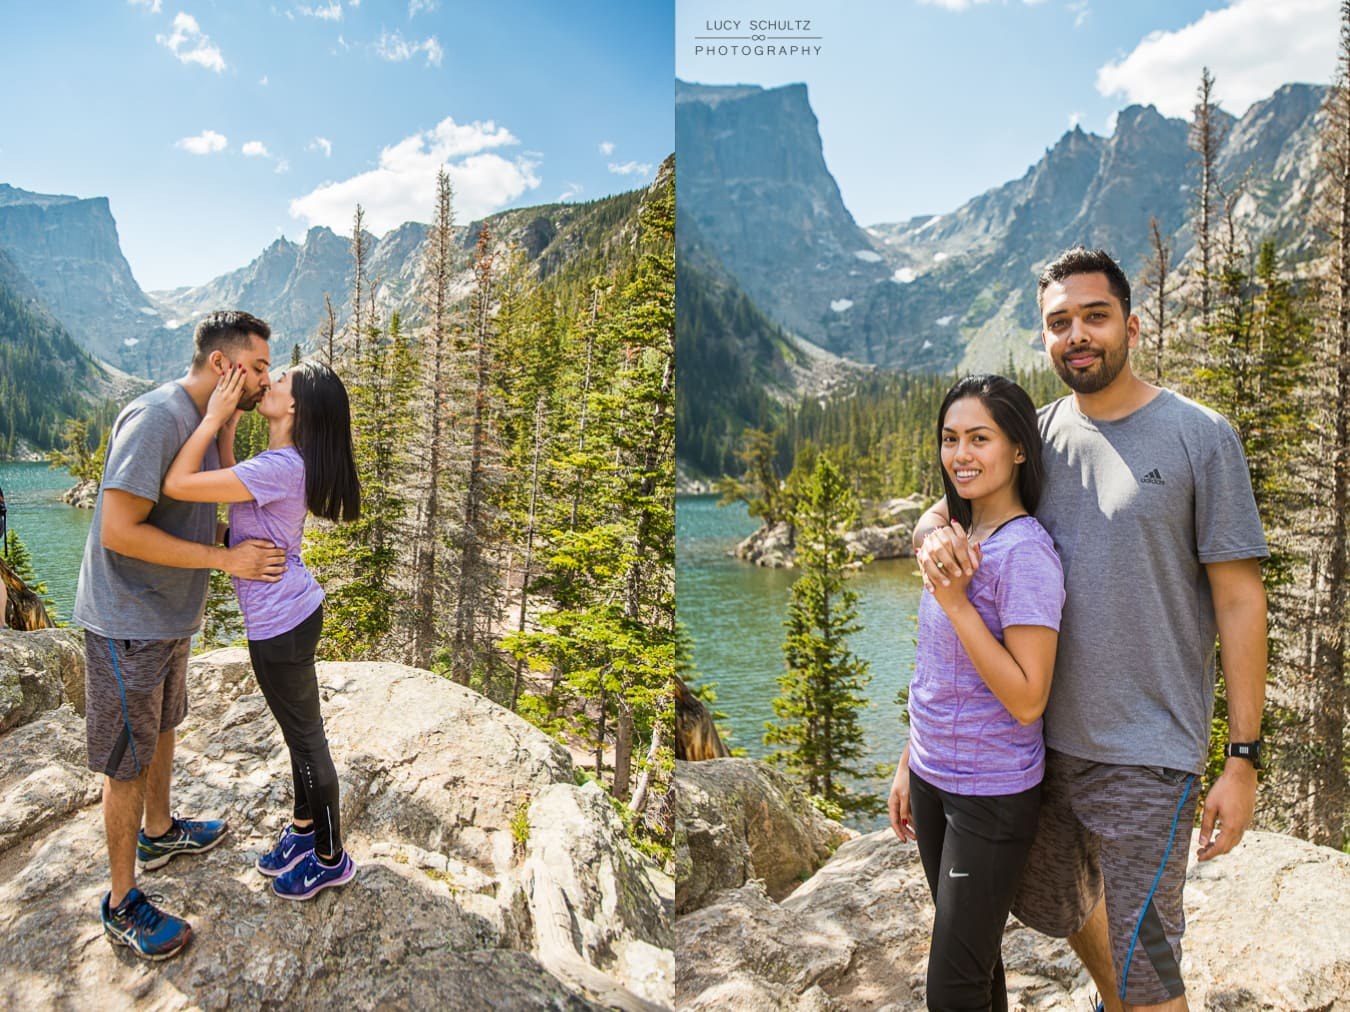 Dream Lake Proposal Photographer – Rocky Mountain National Park Proposal Photographer